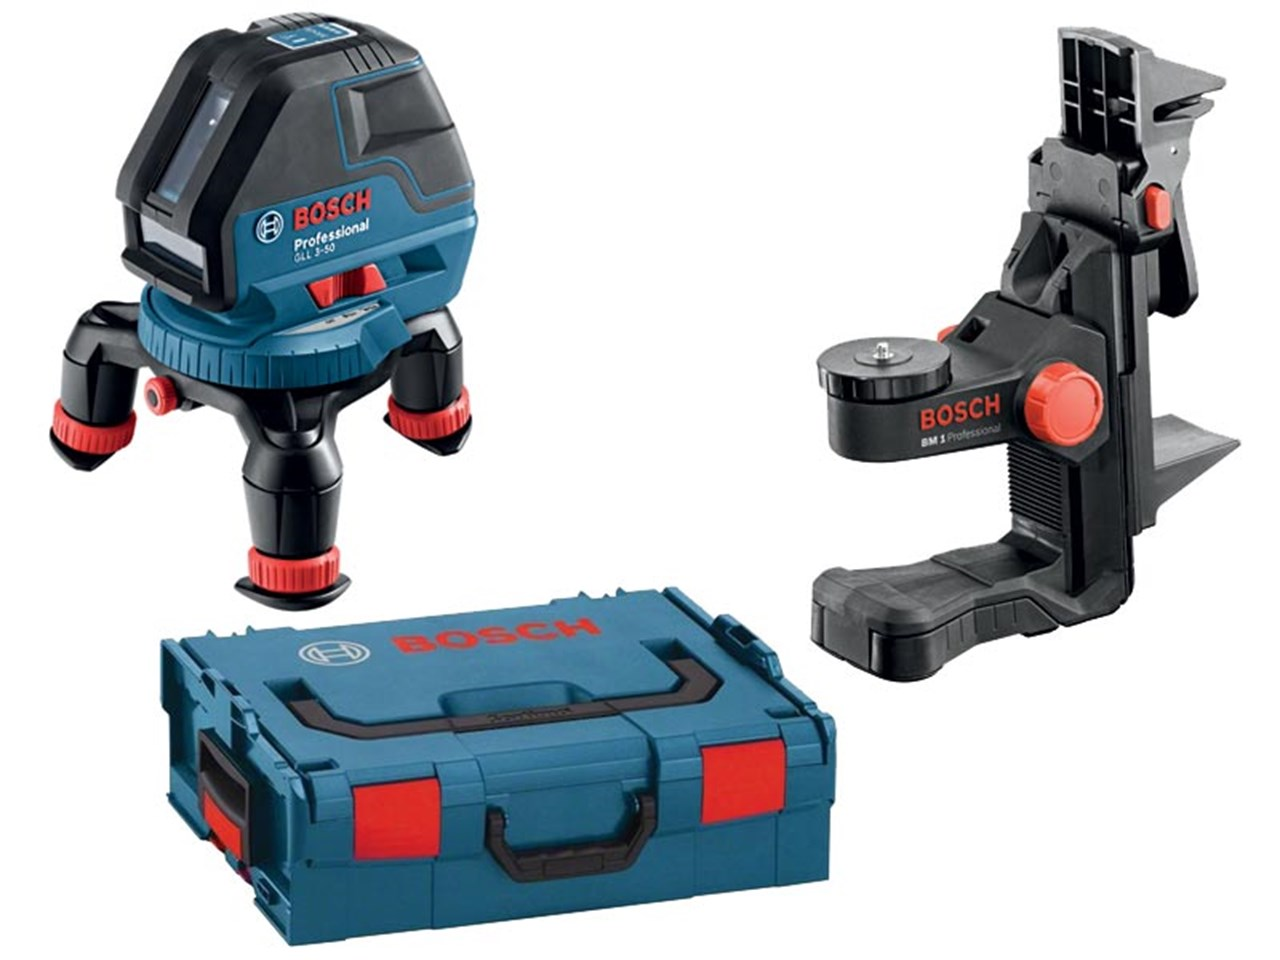 Bosch Gll350bmlbx Multiline Laser With Bm1 Wall Mount In L Boxx Gll 3 15 Level Mini